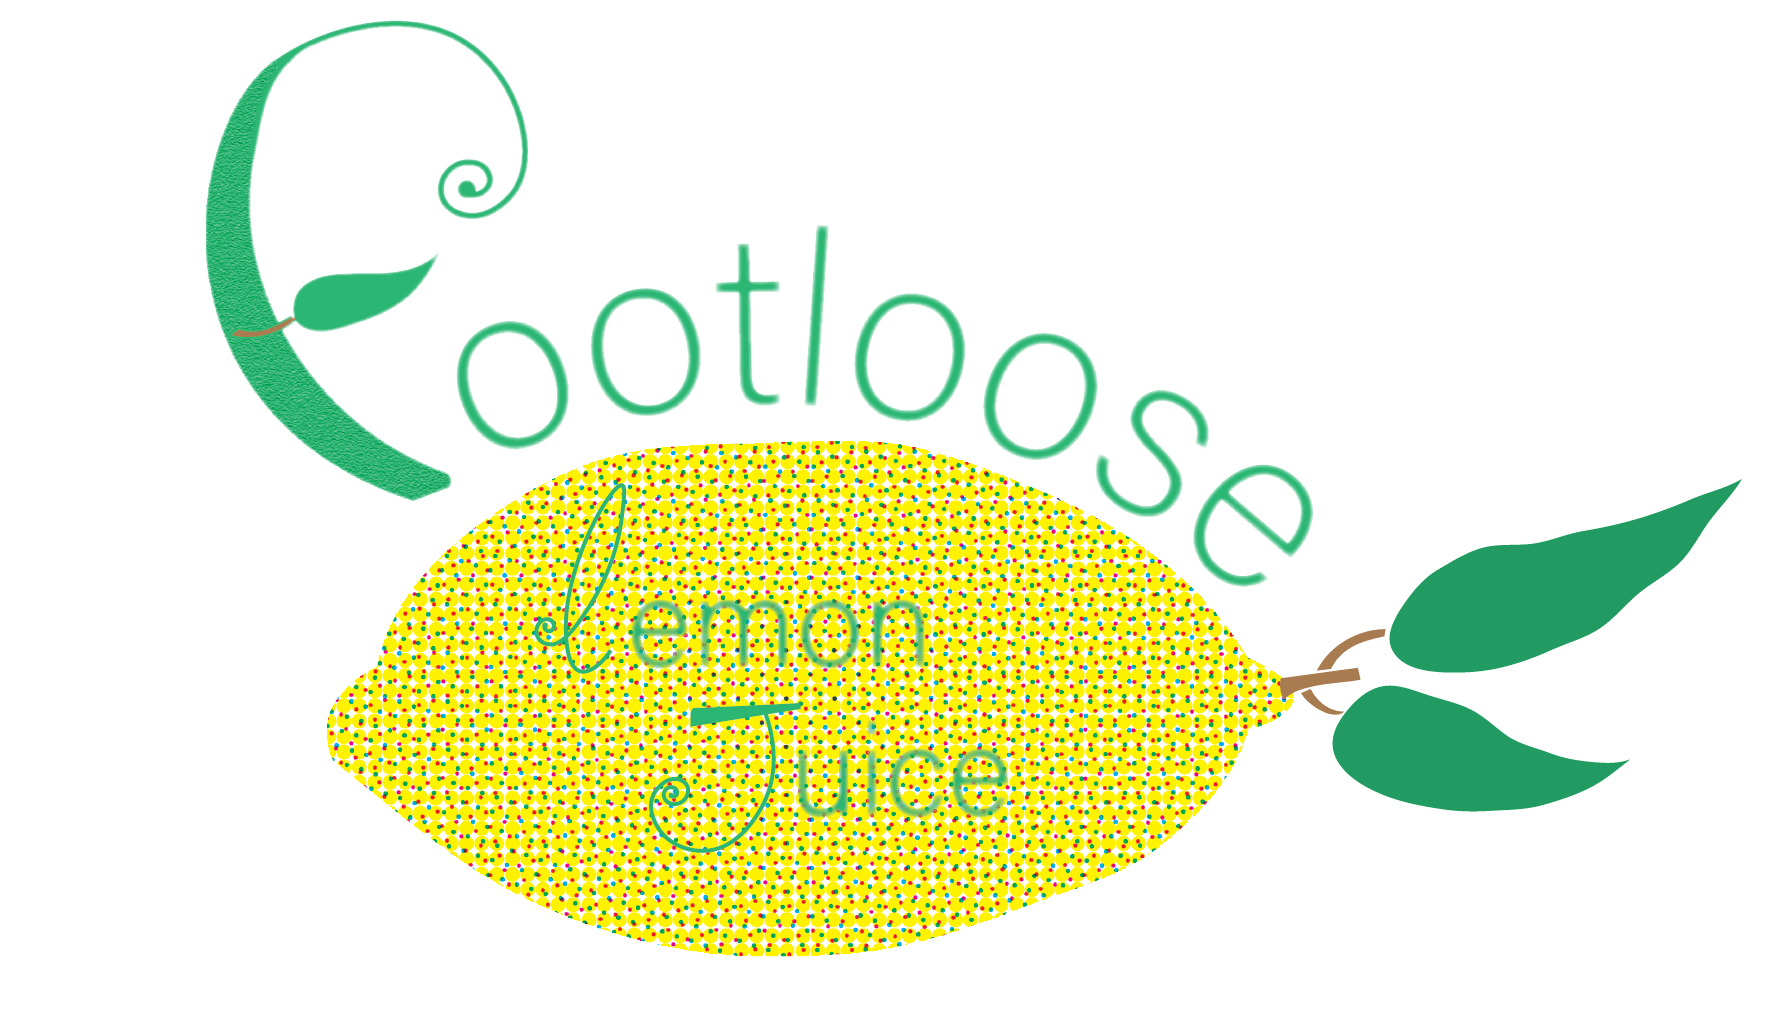 Footloose Lemon Juice